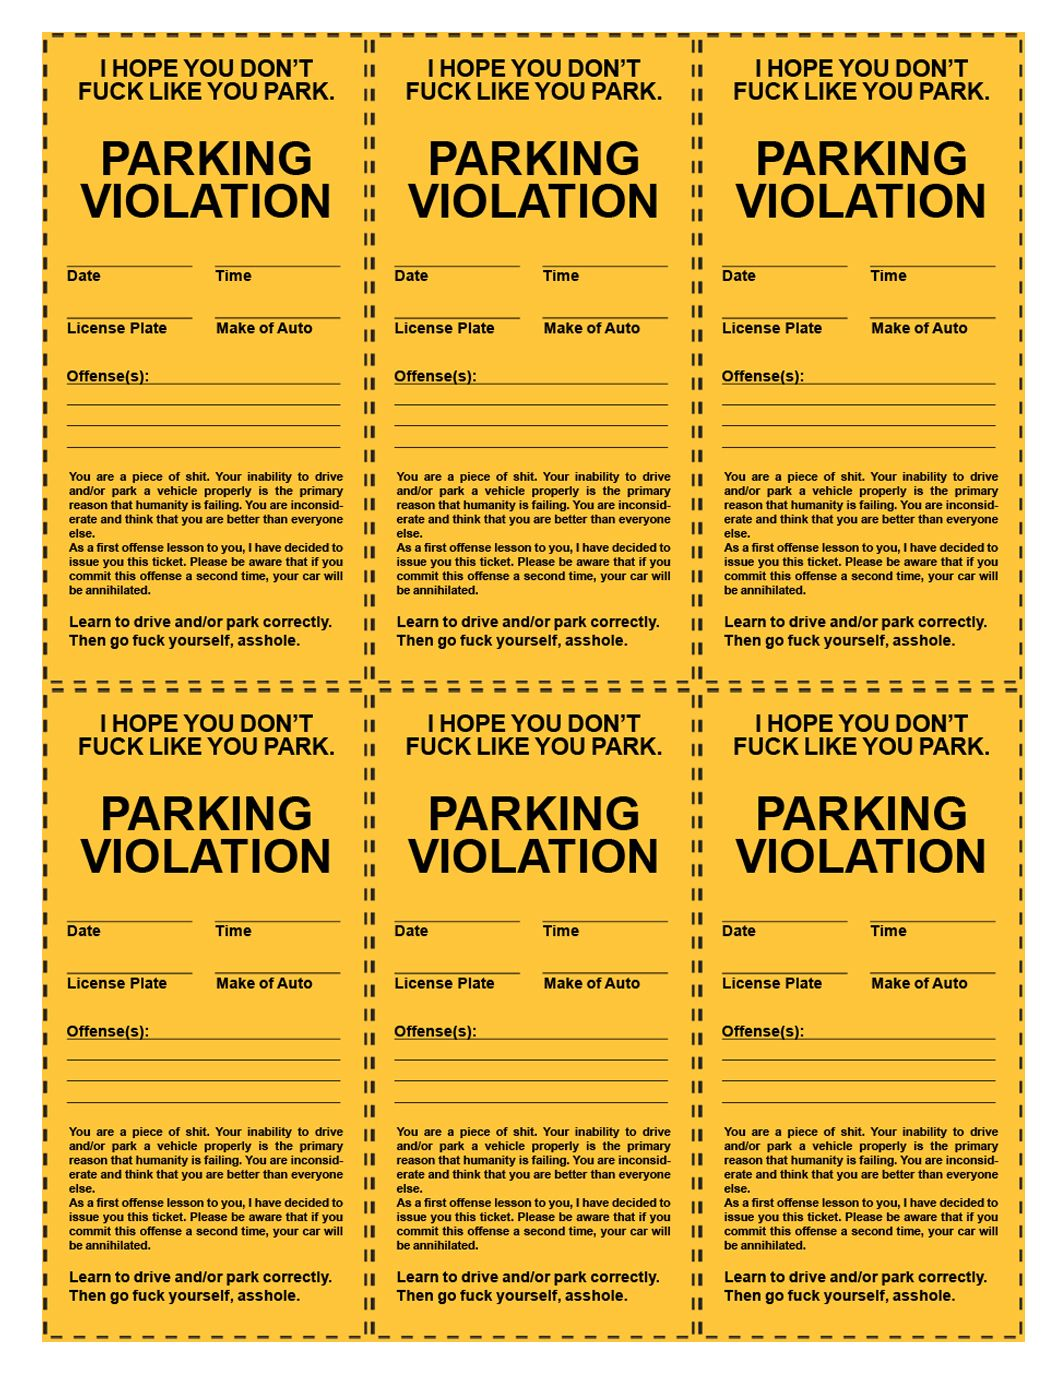 image about Printable Parking Tickets identified as amusing printable parking tickets Templates and Printables